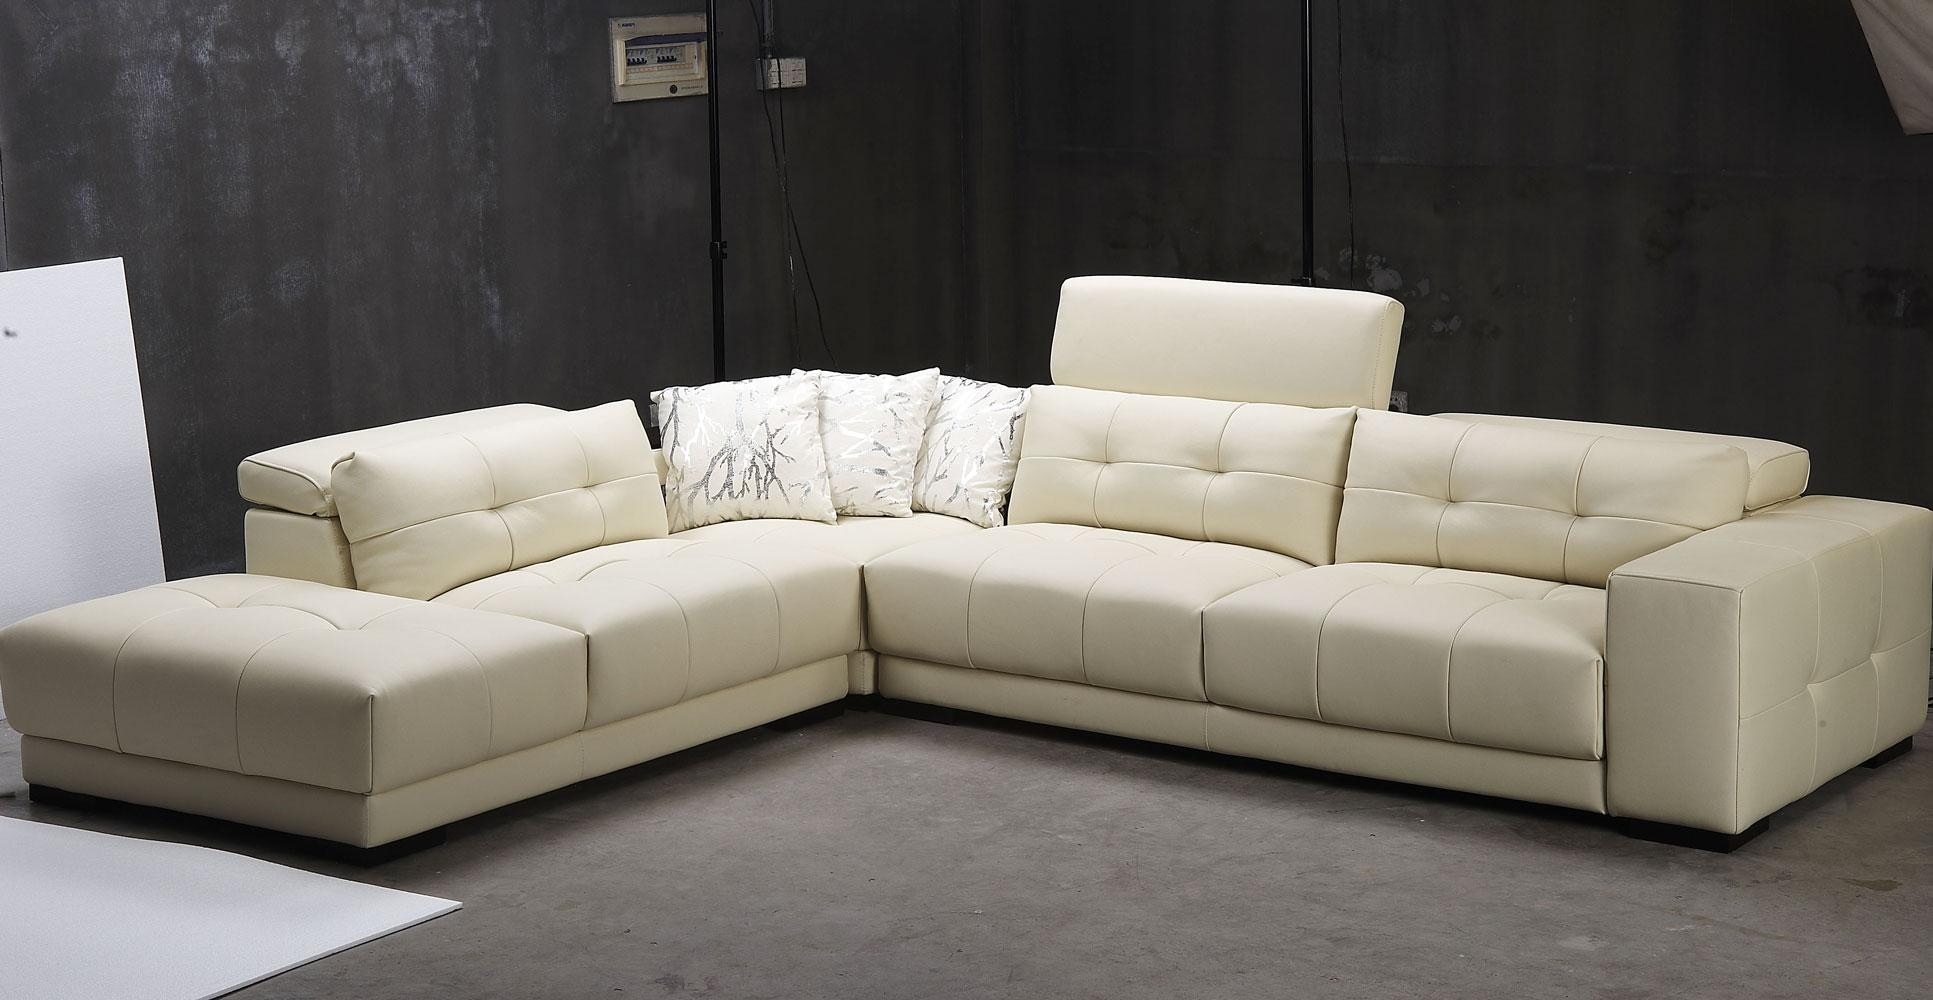 Best Modern 3 Piece White Leather Sectional Sleeper Sofa With Regarding 3 Piece Sectional Sleeper Sofa (Image 7 of 15)